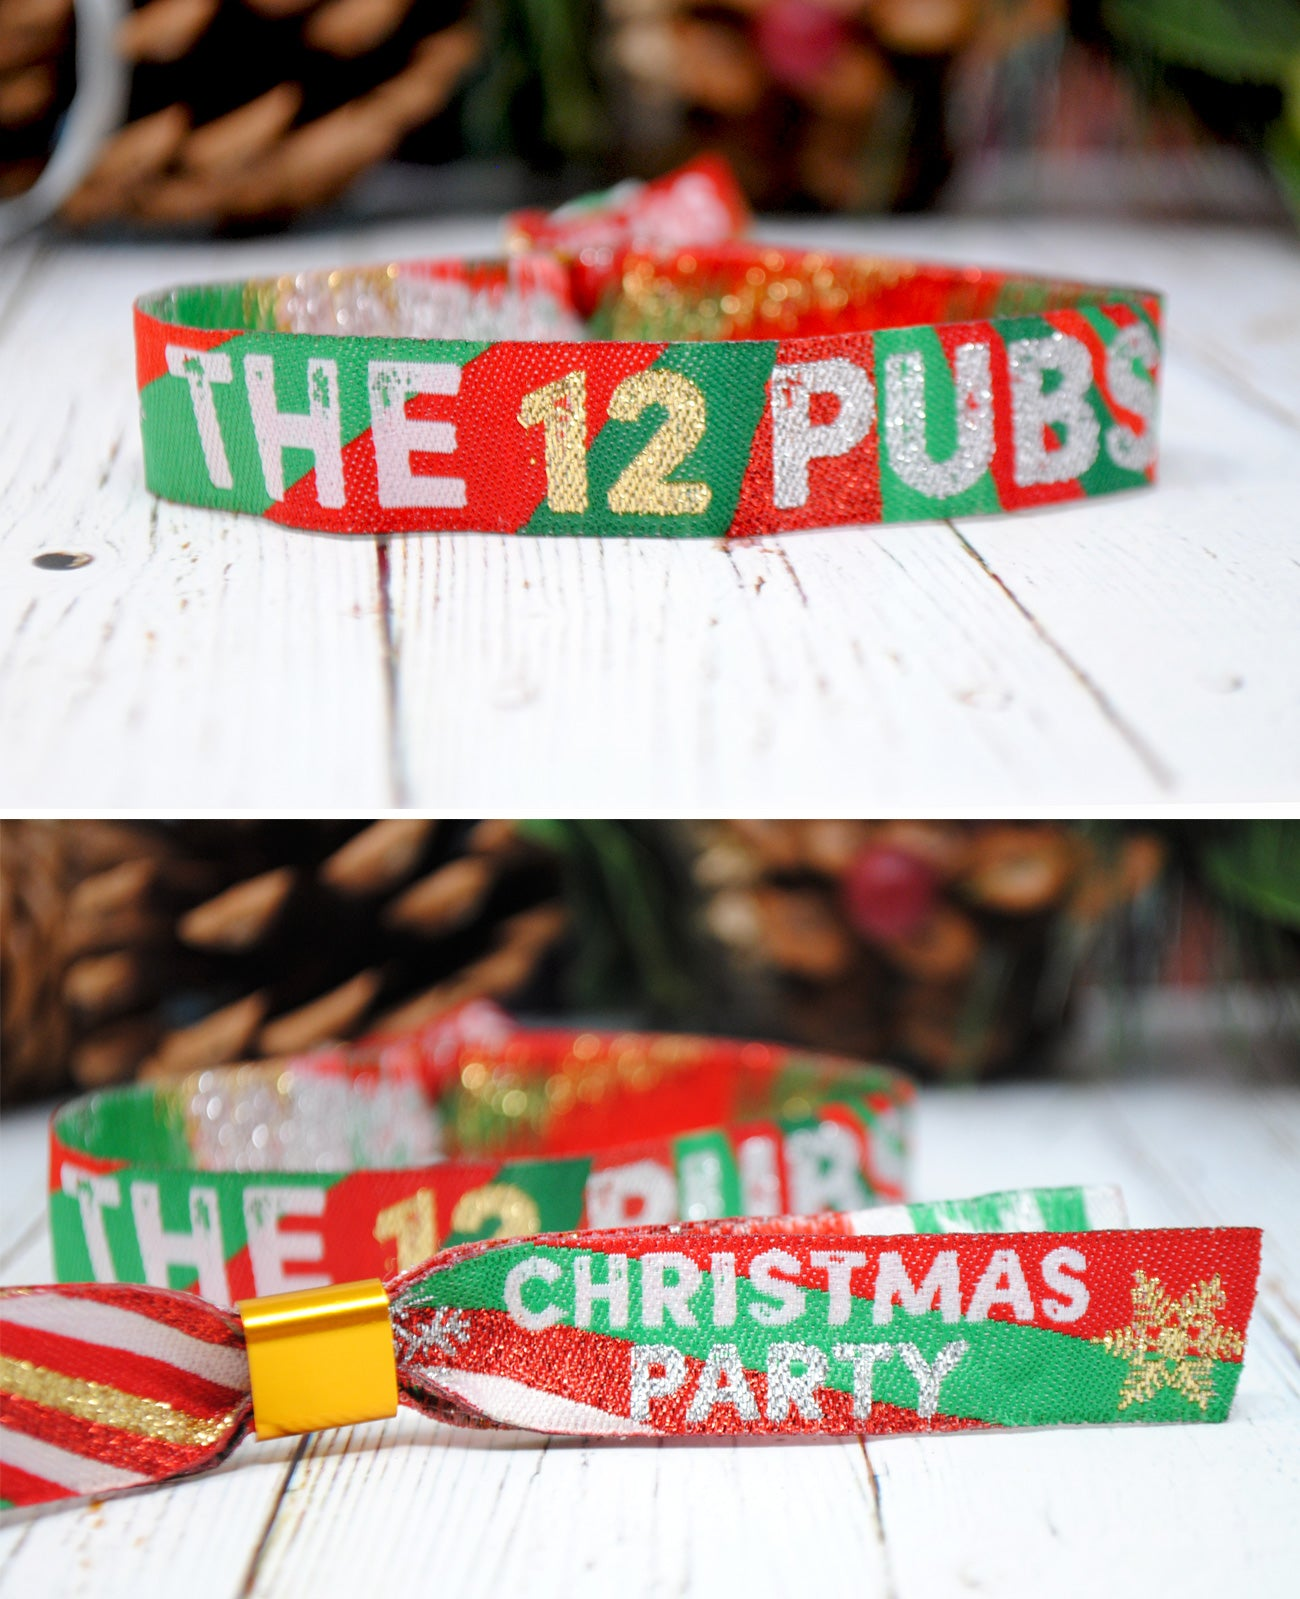 the 12 pubs christmas party wristbands